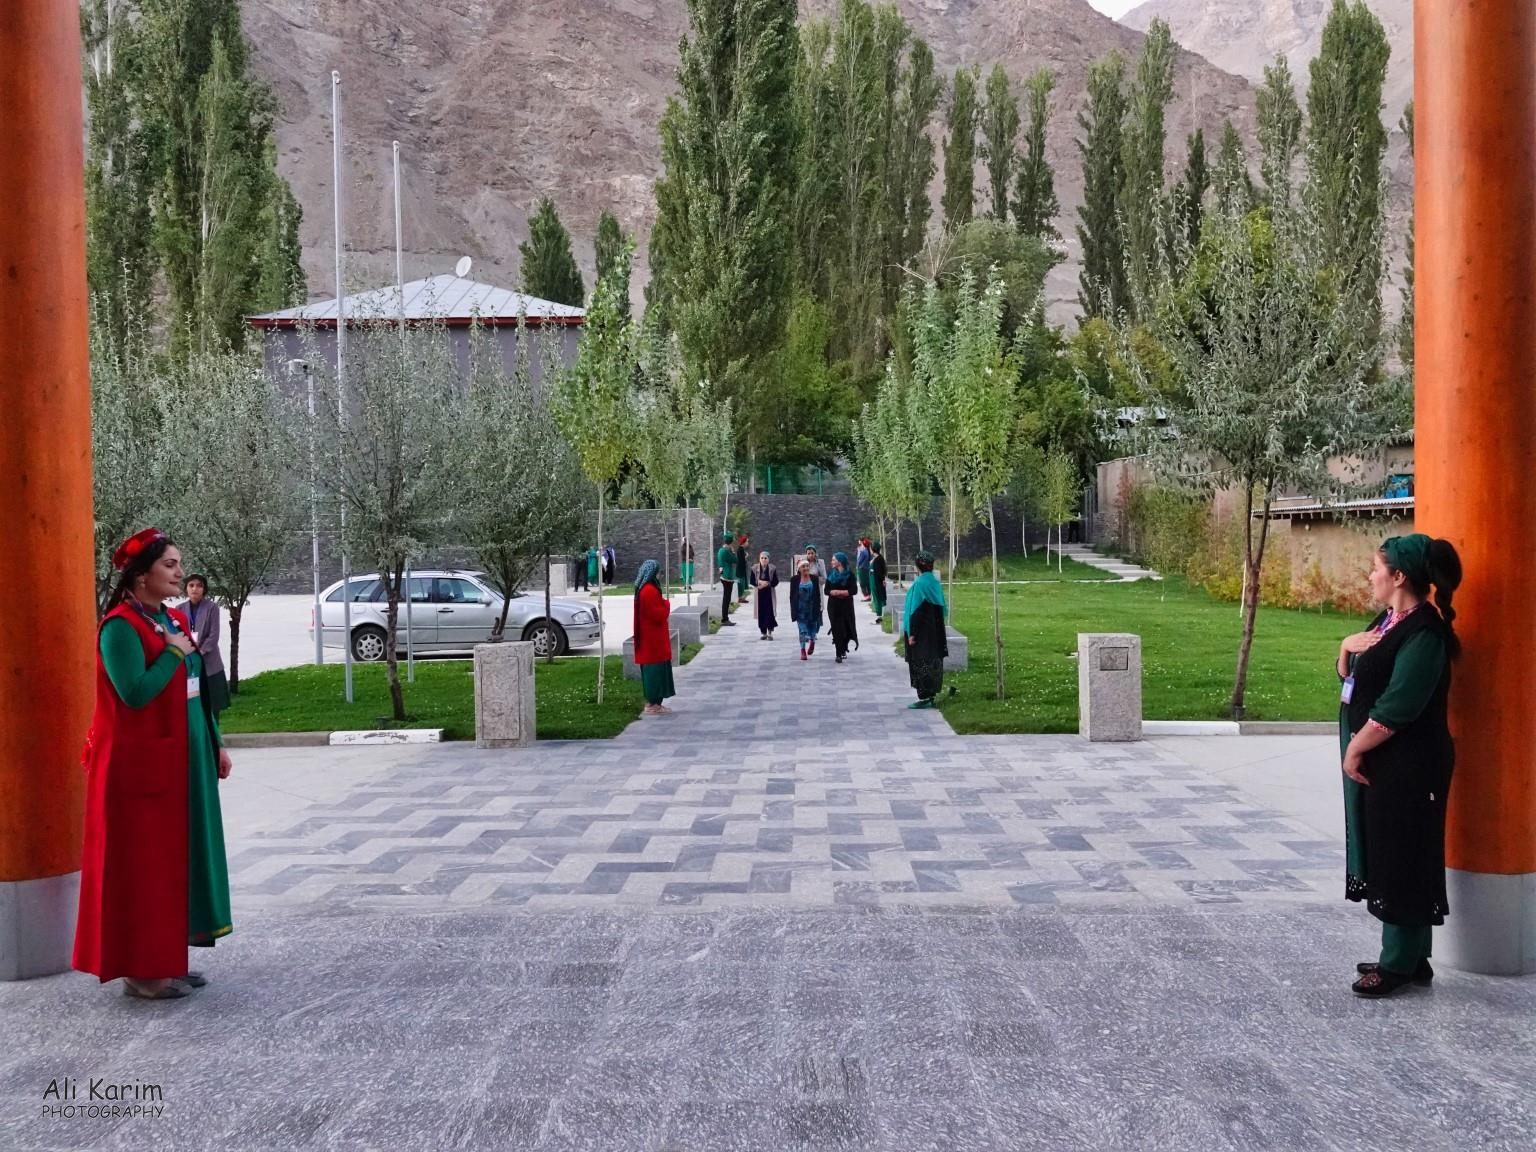 More Khorog, Tajikistan Entrance of the Ismaili Center building for evening prayers